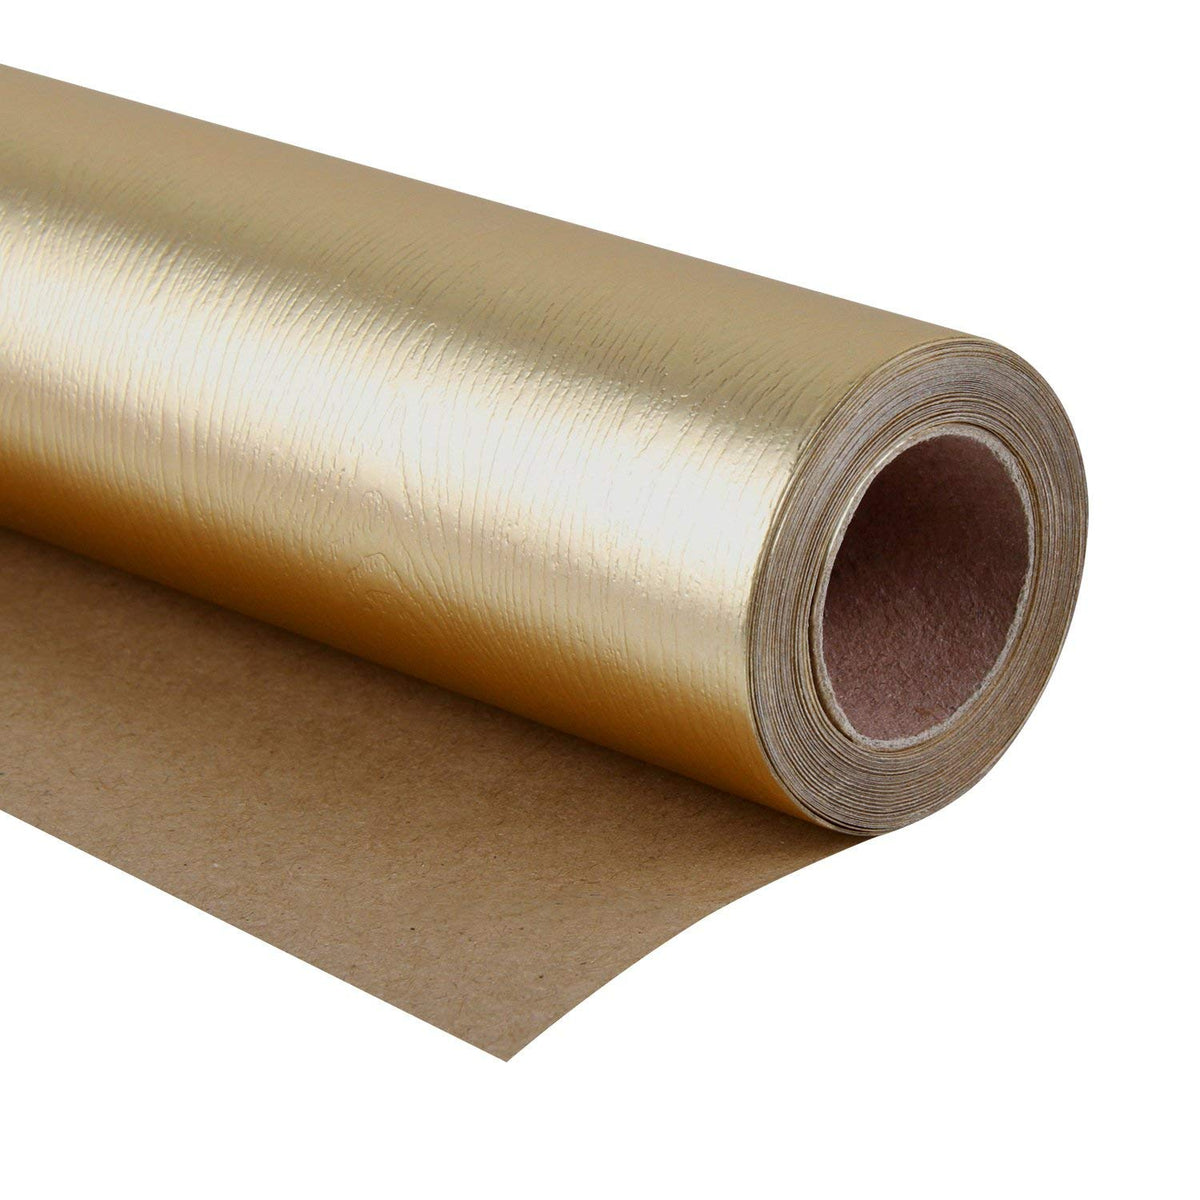 Wrapaholic-Metalic-Gift-Wrapping-Paper- Gold- Wood-Grain-1